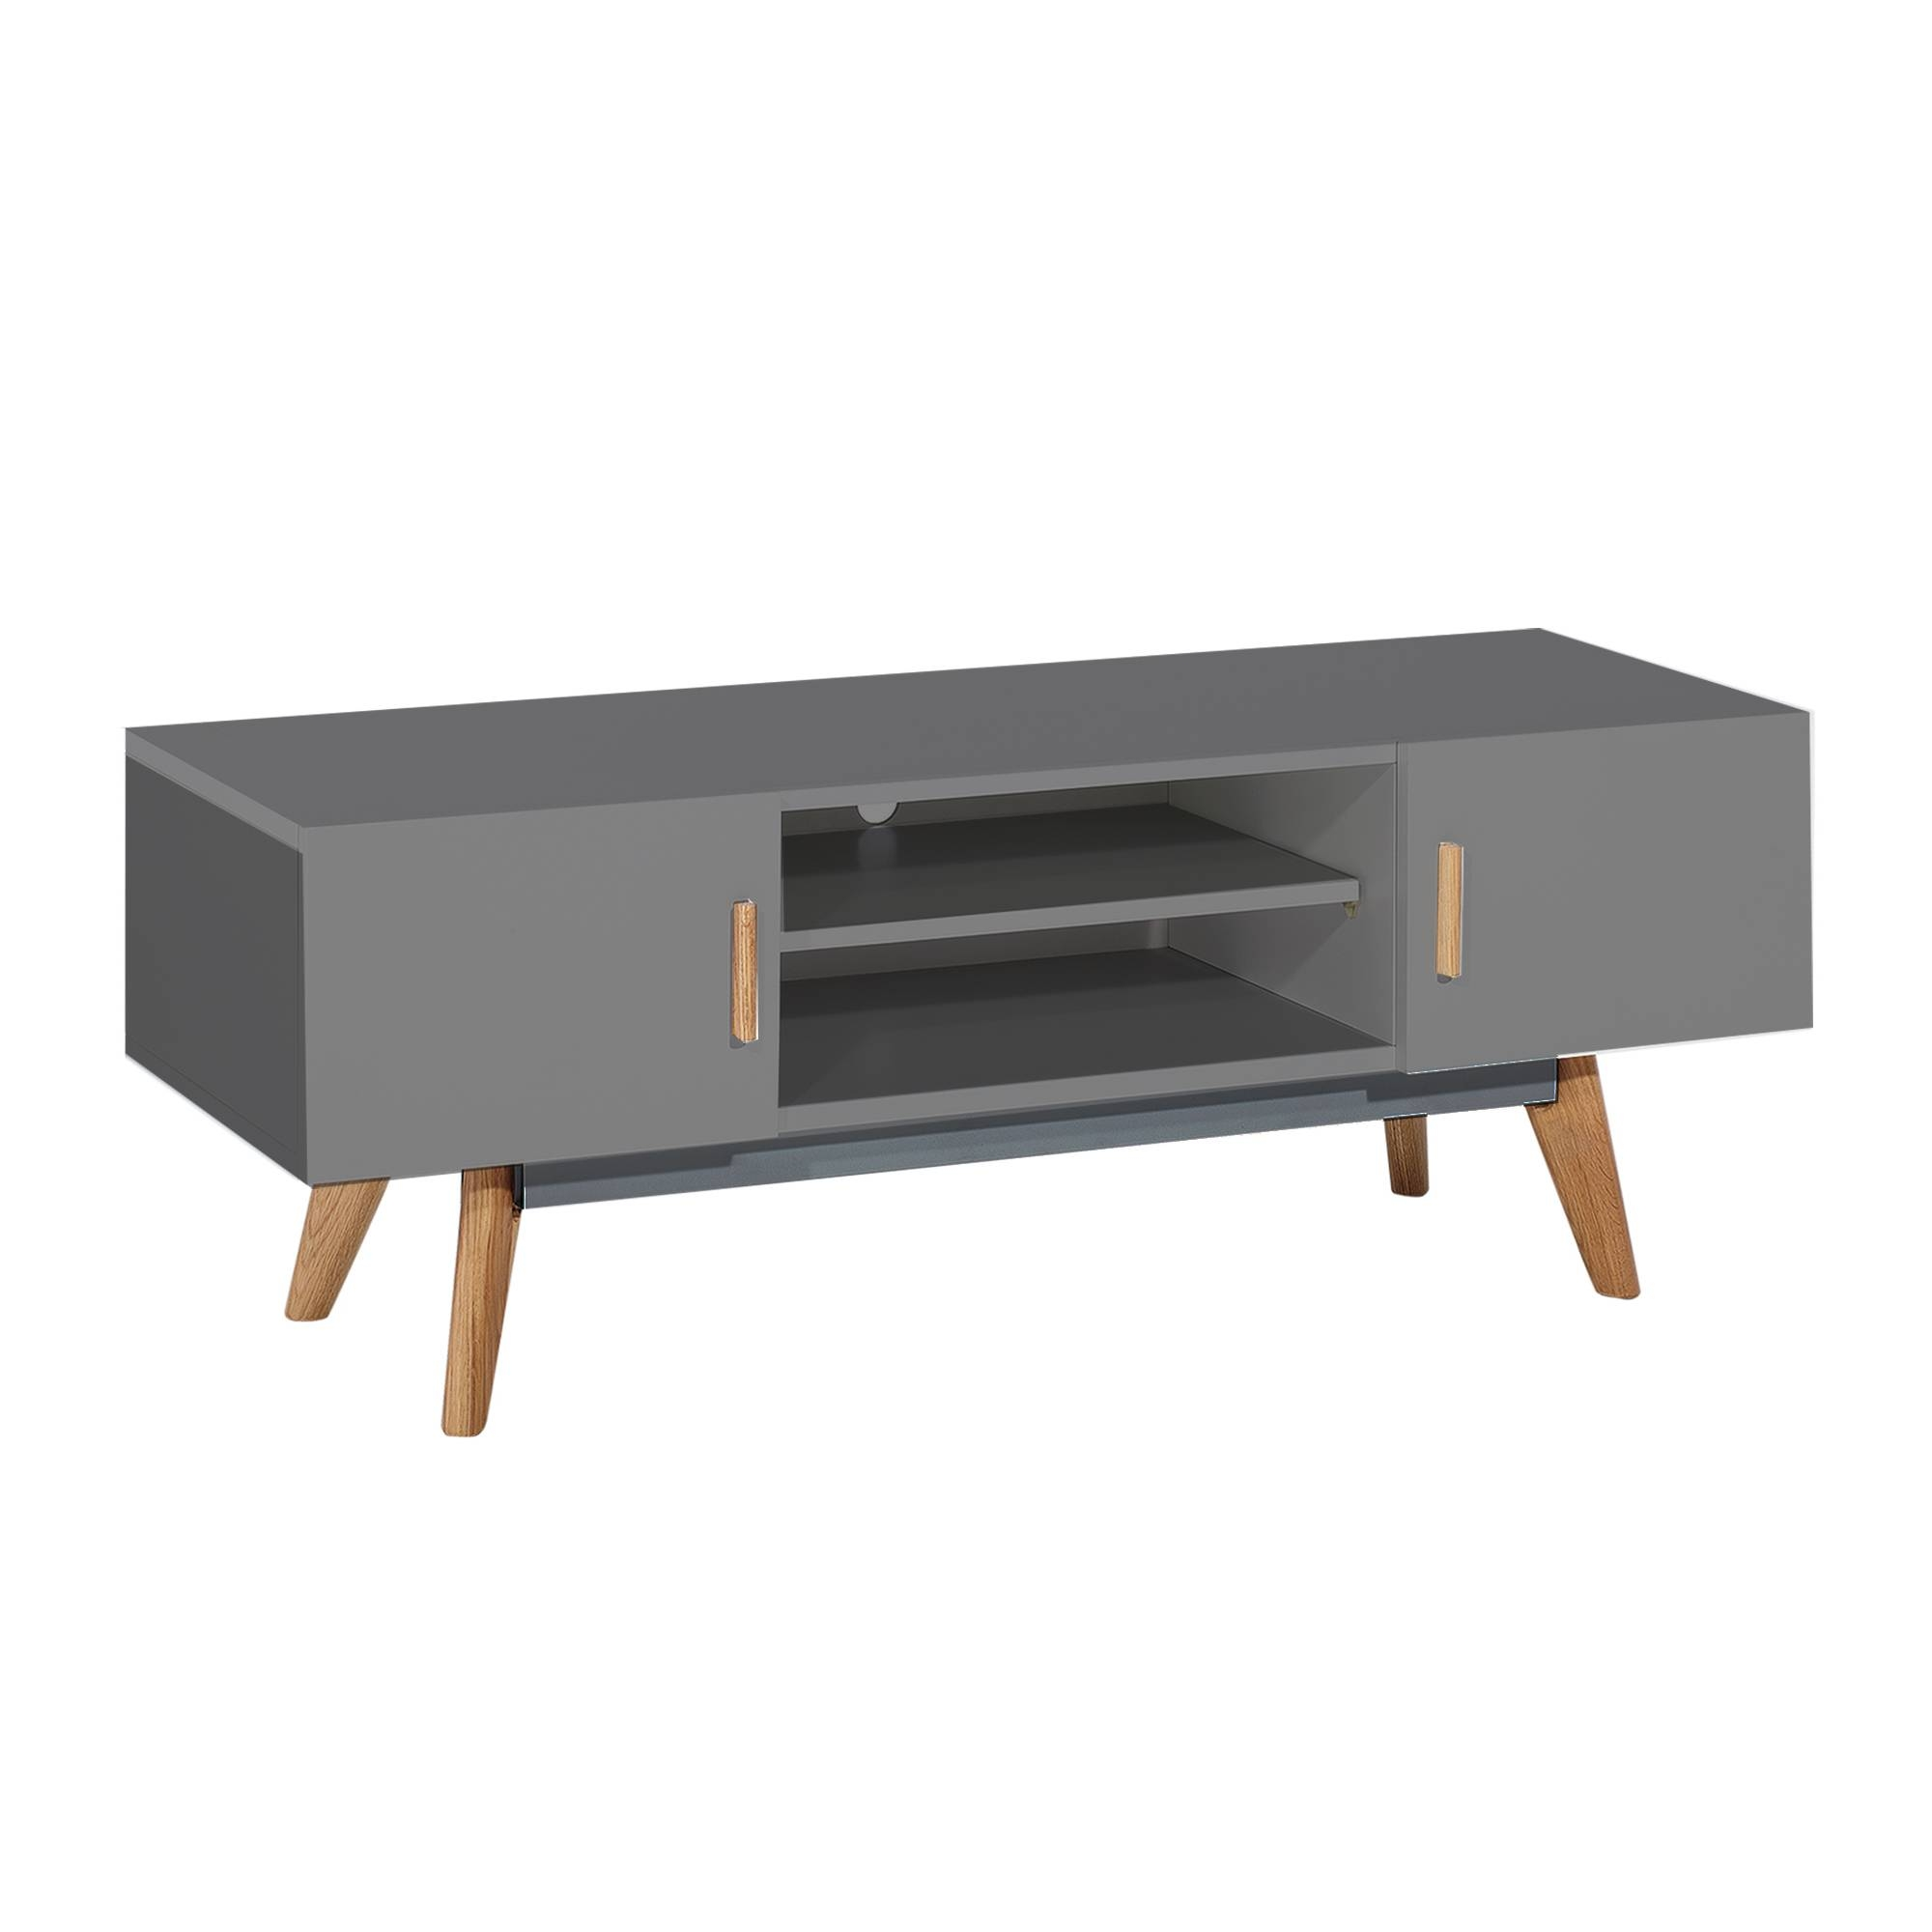 Stylish White Modern Tv Stand From Abreo Abreo Home Furniture for Grey Tv Stands (Image 11 of 15)